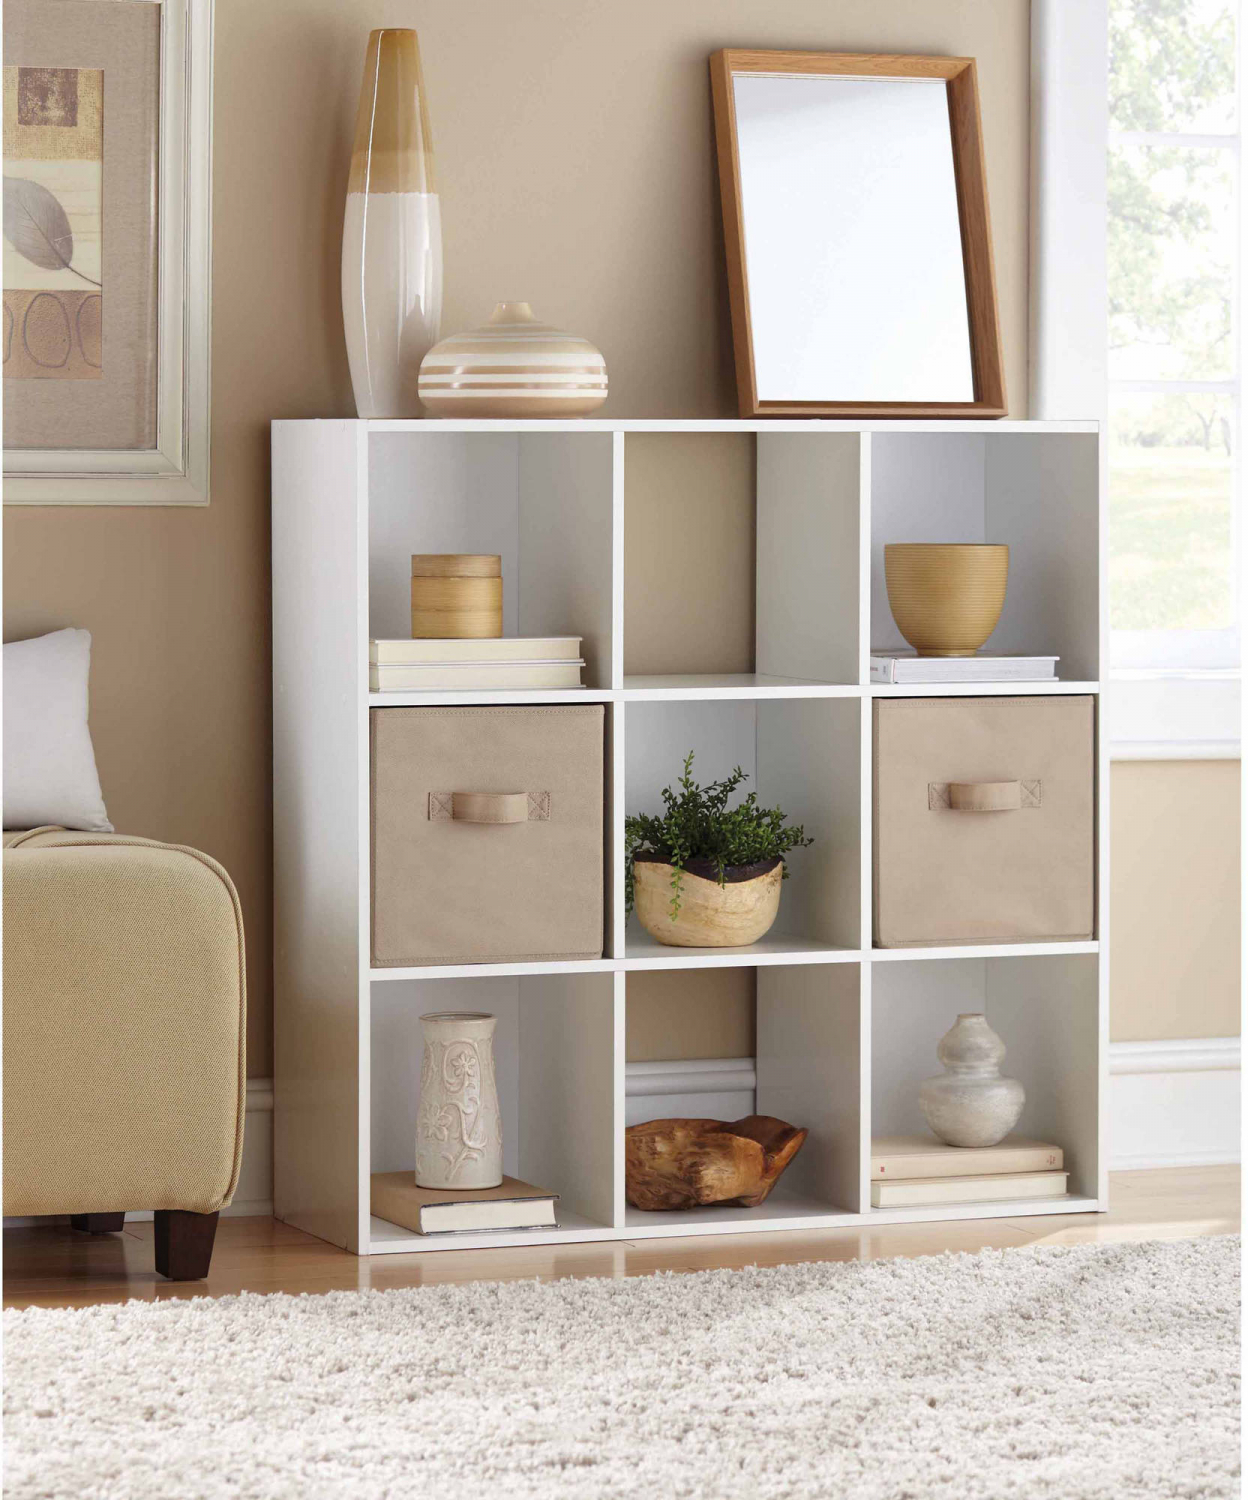 Details about 9 Cube Storage Organizer Book Shelf Office Apartment Home  Dorm Bedroom Furniture